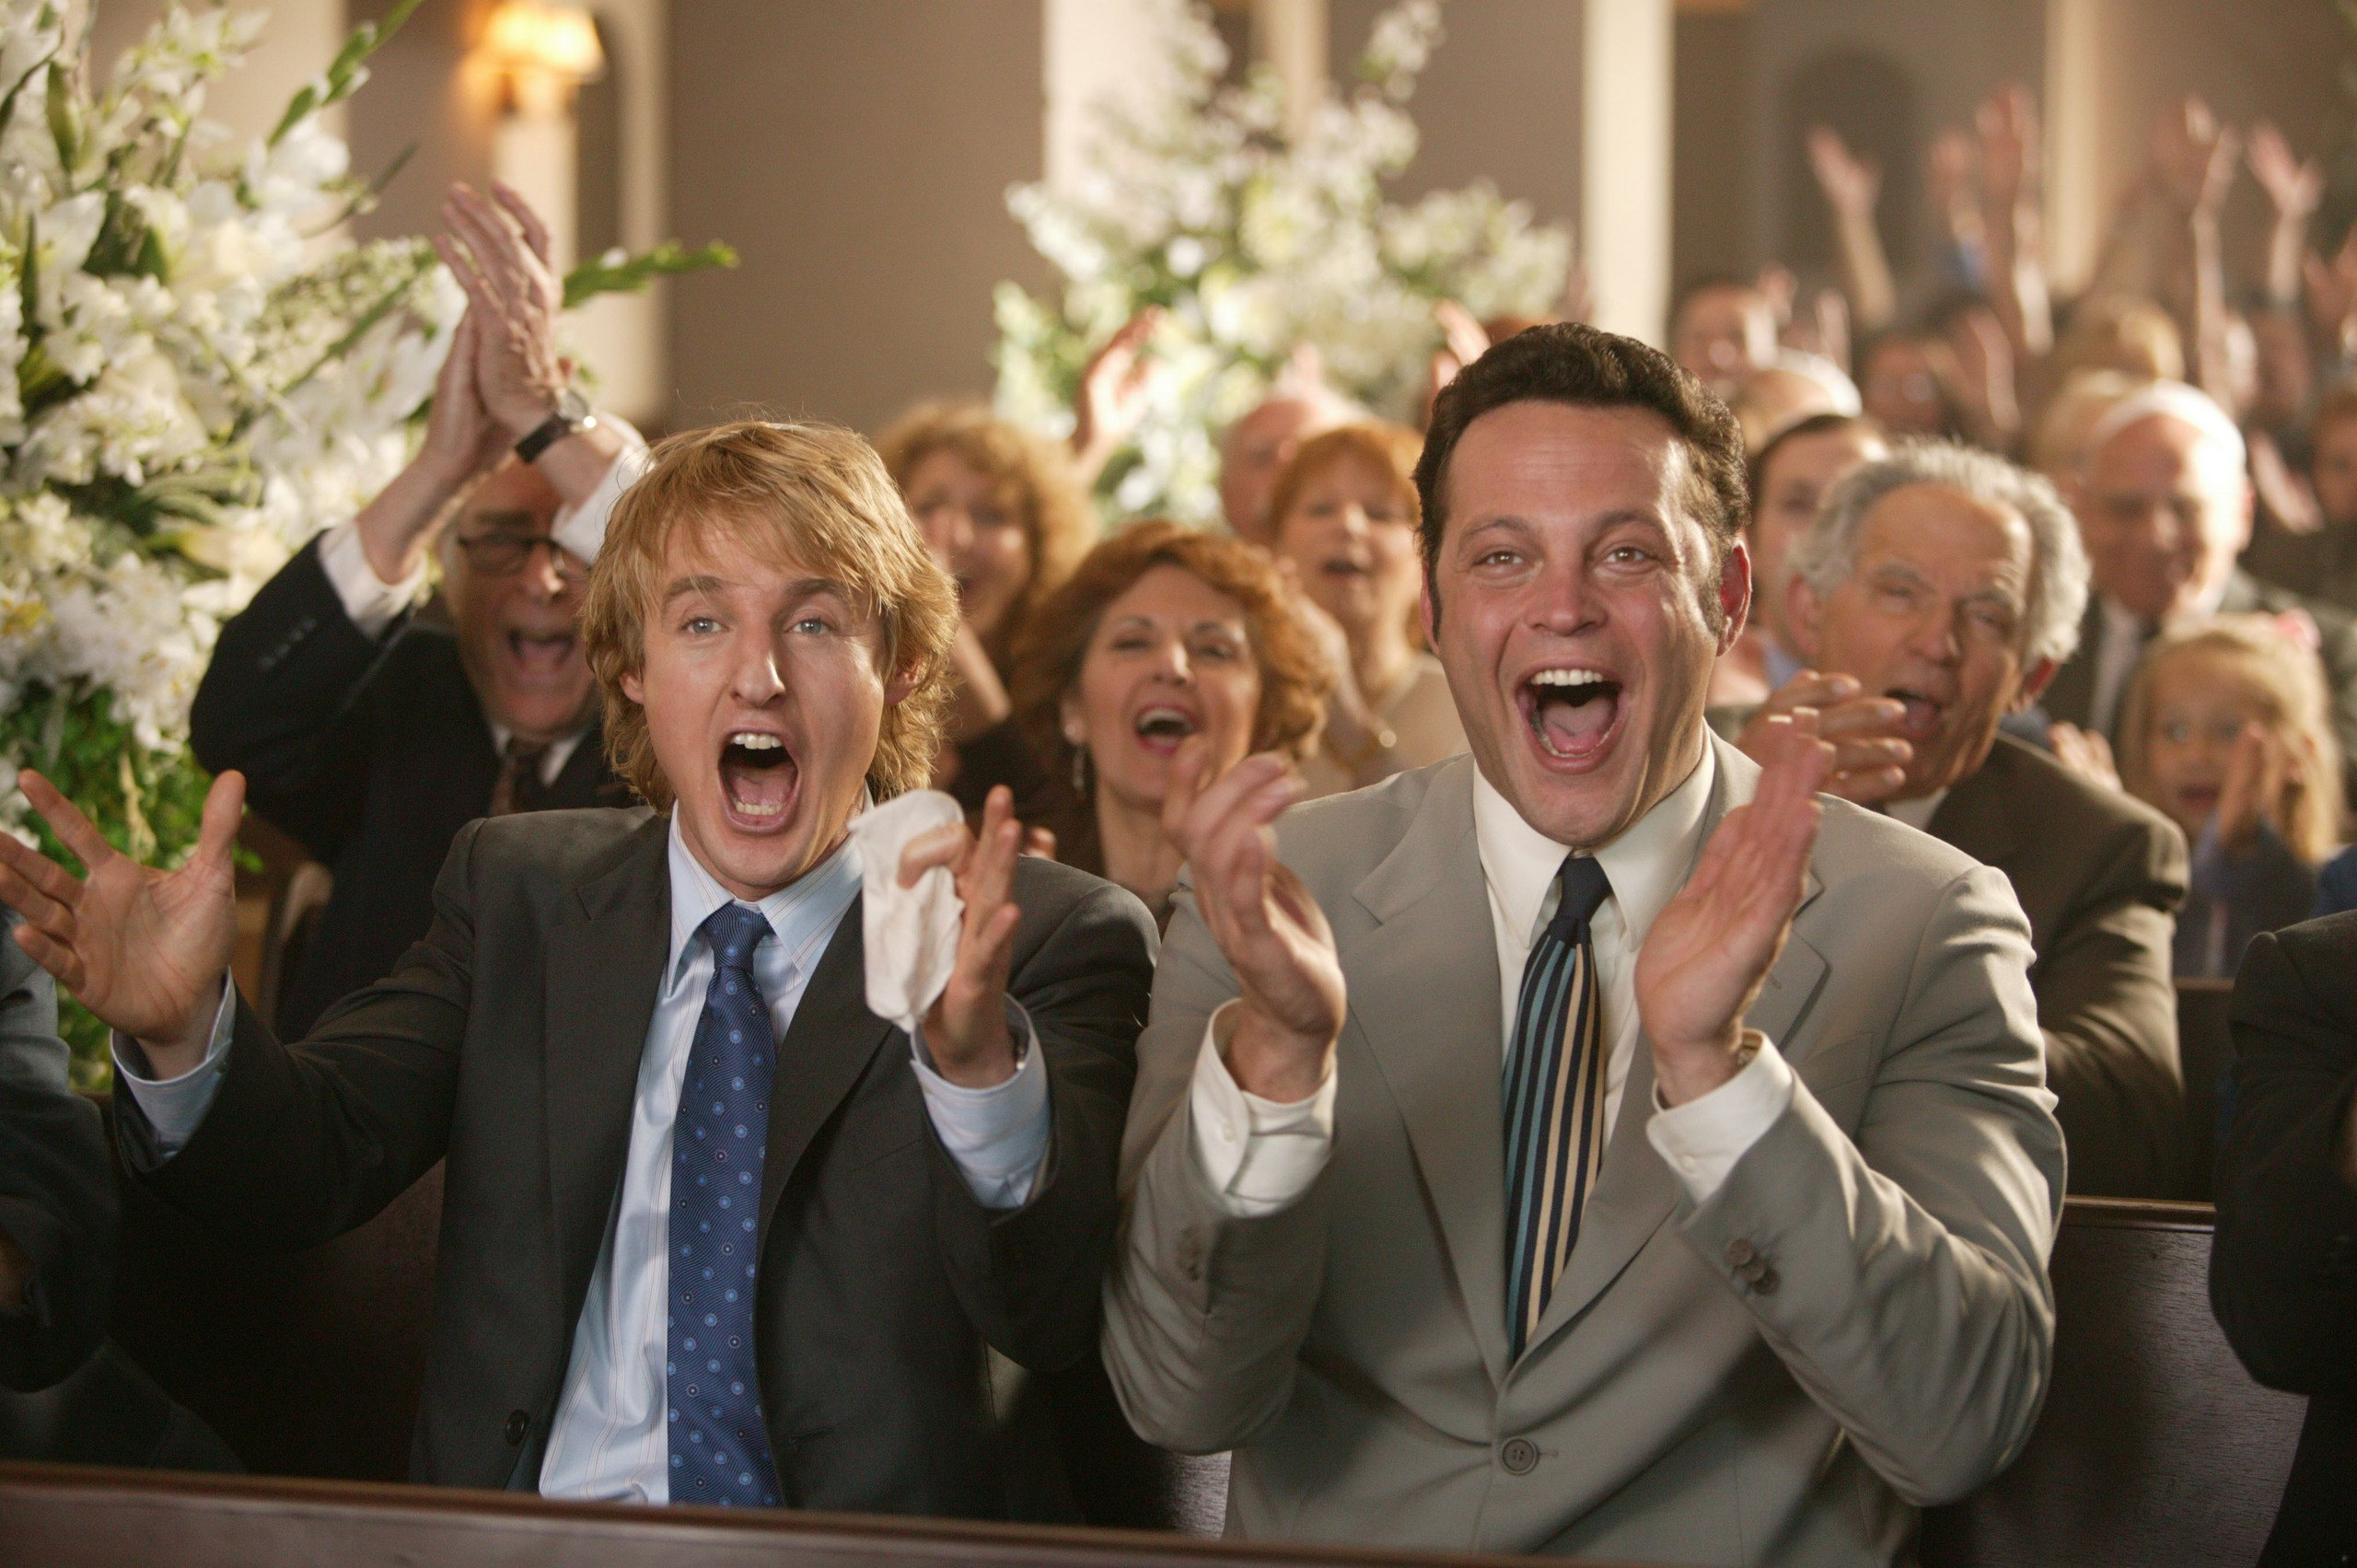 Wedding Crashers | New Line Cinema